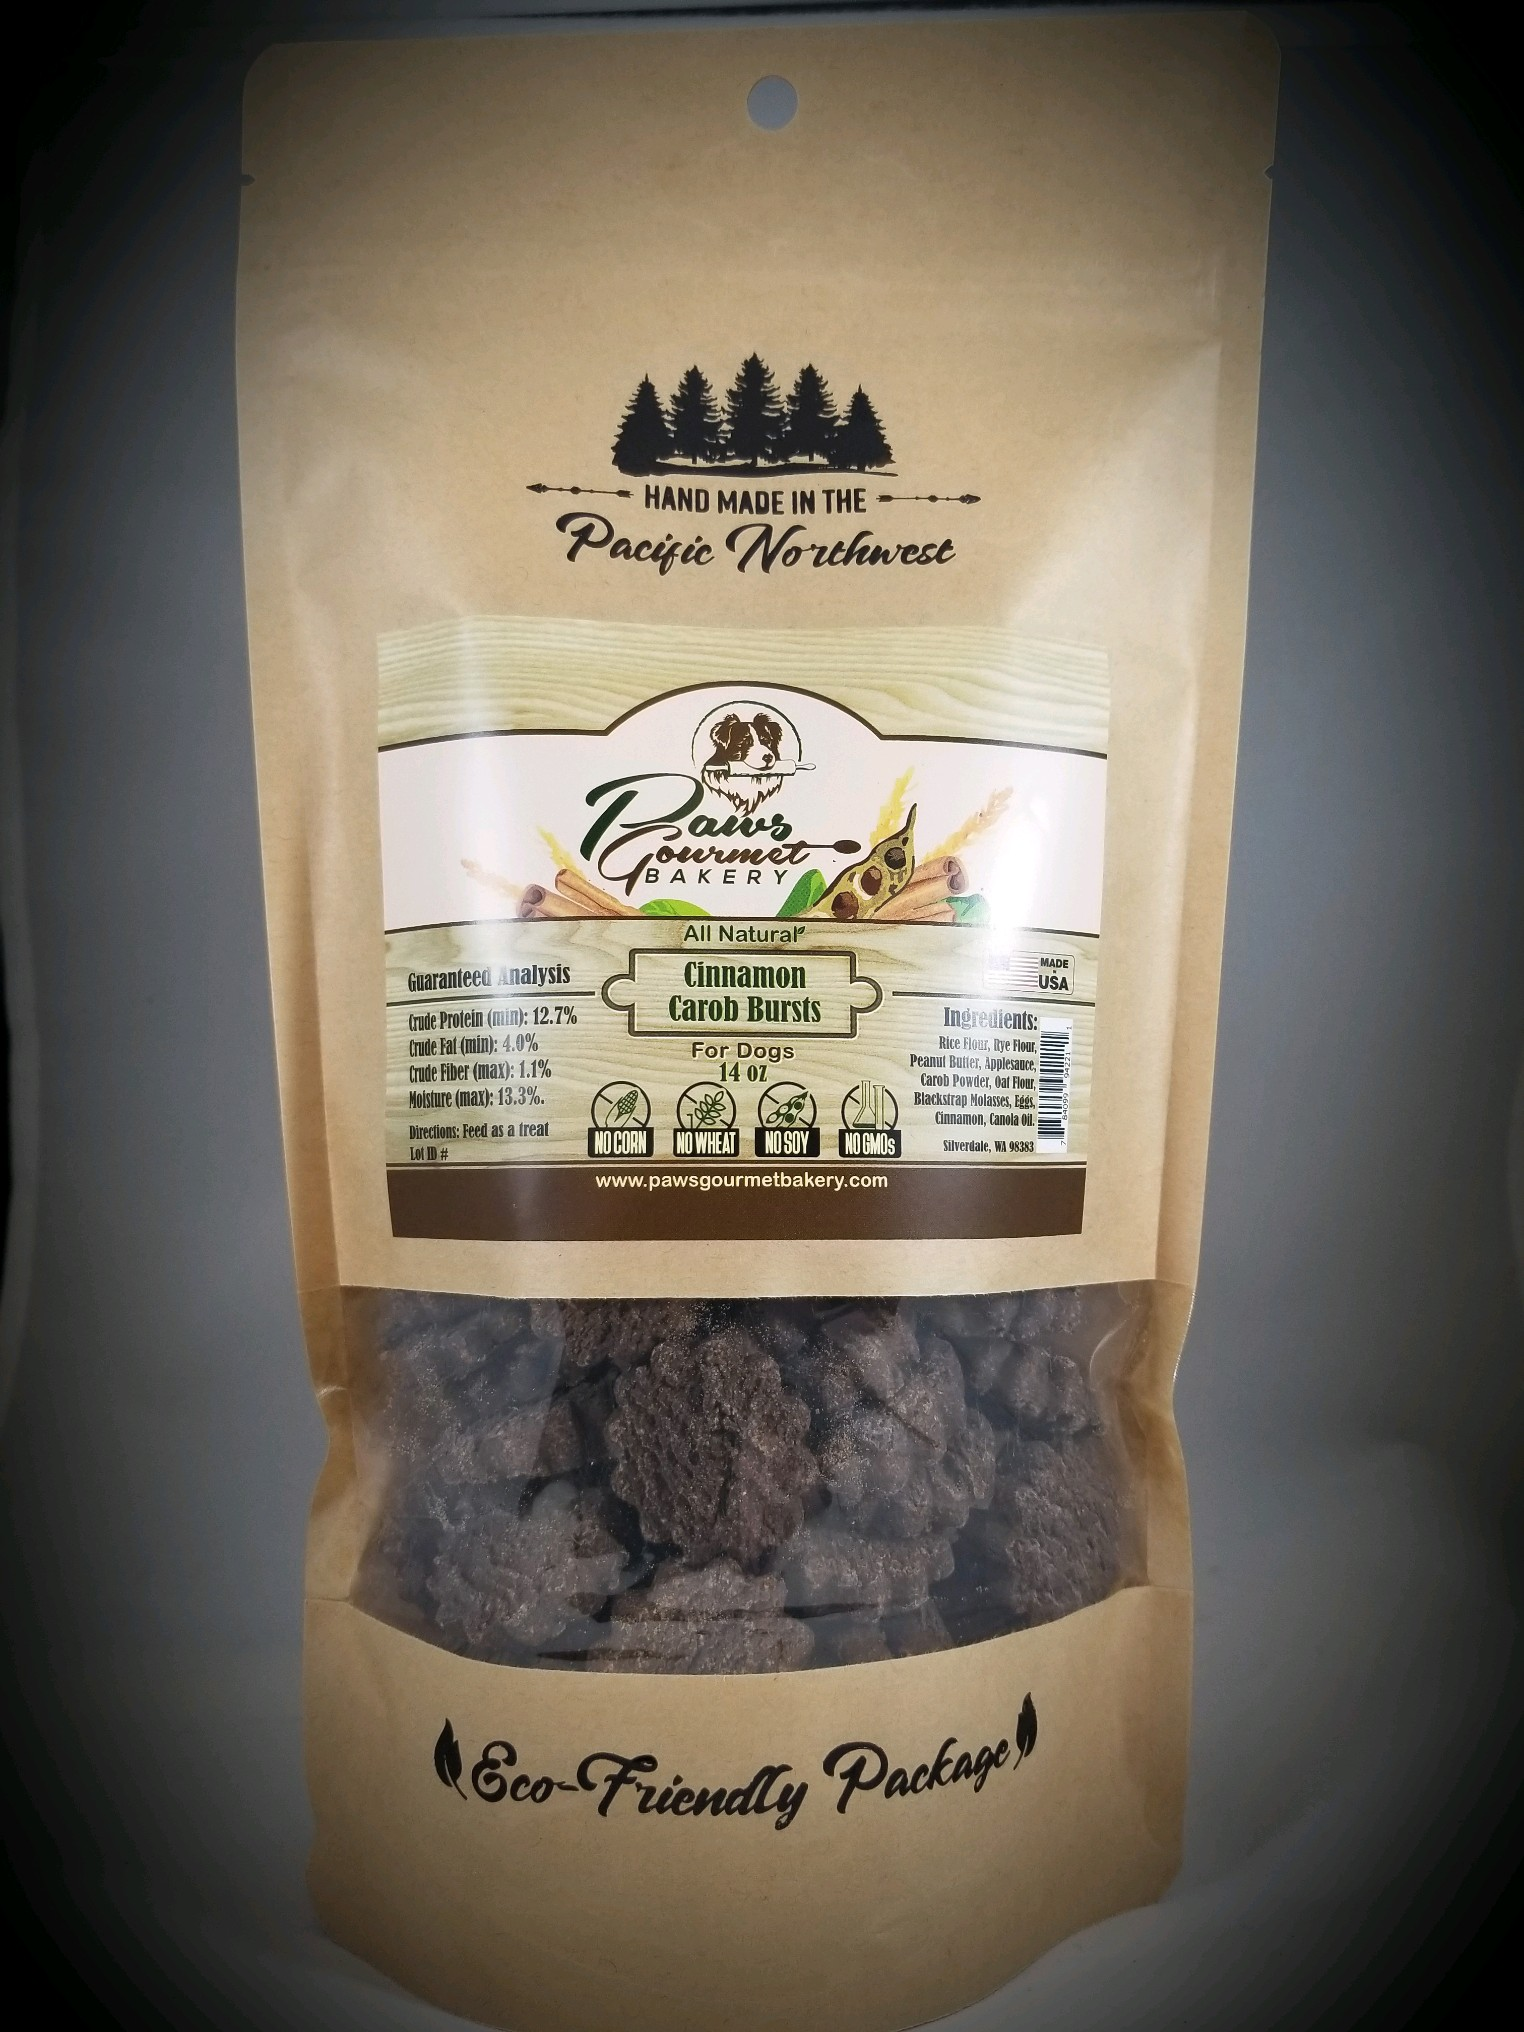 Cinnamon Carob Bursts 14 oz pouch